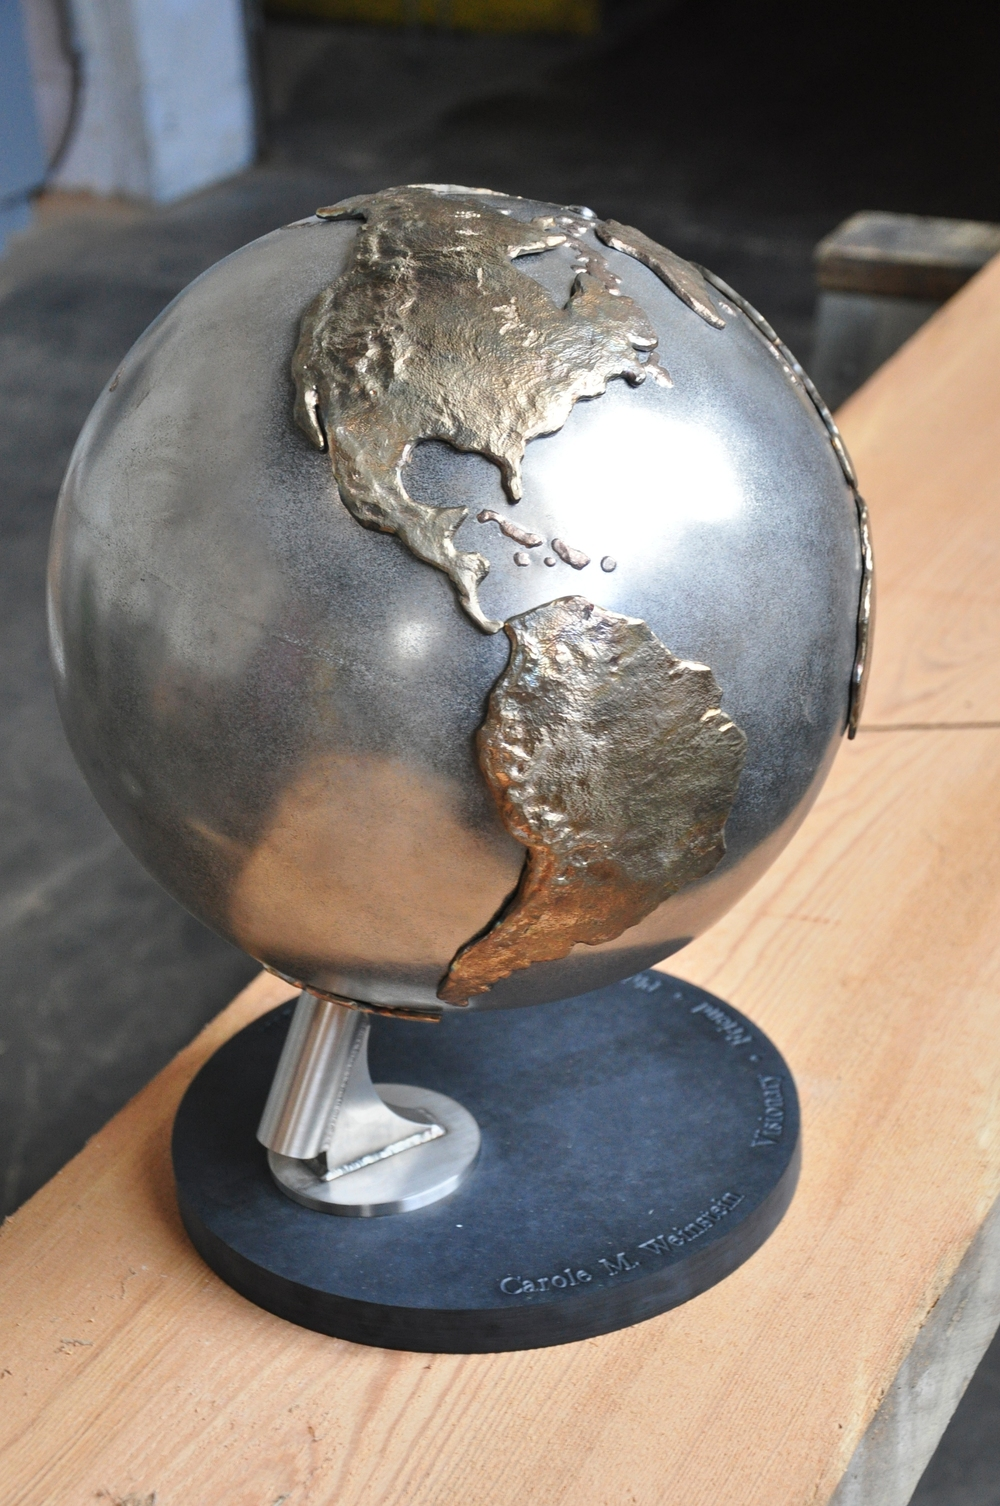 We first made a maquette to understand how the parts would go together :  the bronze continents are welded onto a stainless steel sphere, which is suspended on a steel rod, which rests in a pivot. At the conclusion of the project, this globe was given to Carole Weinstein.